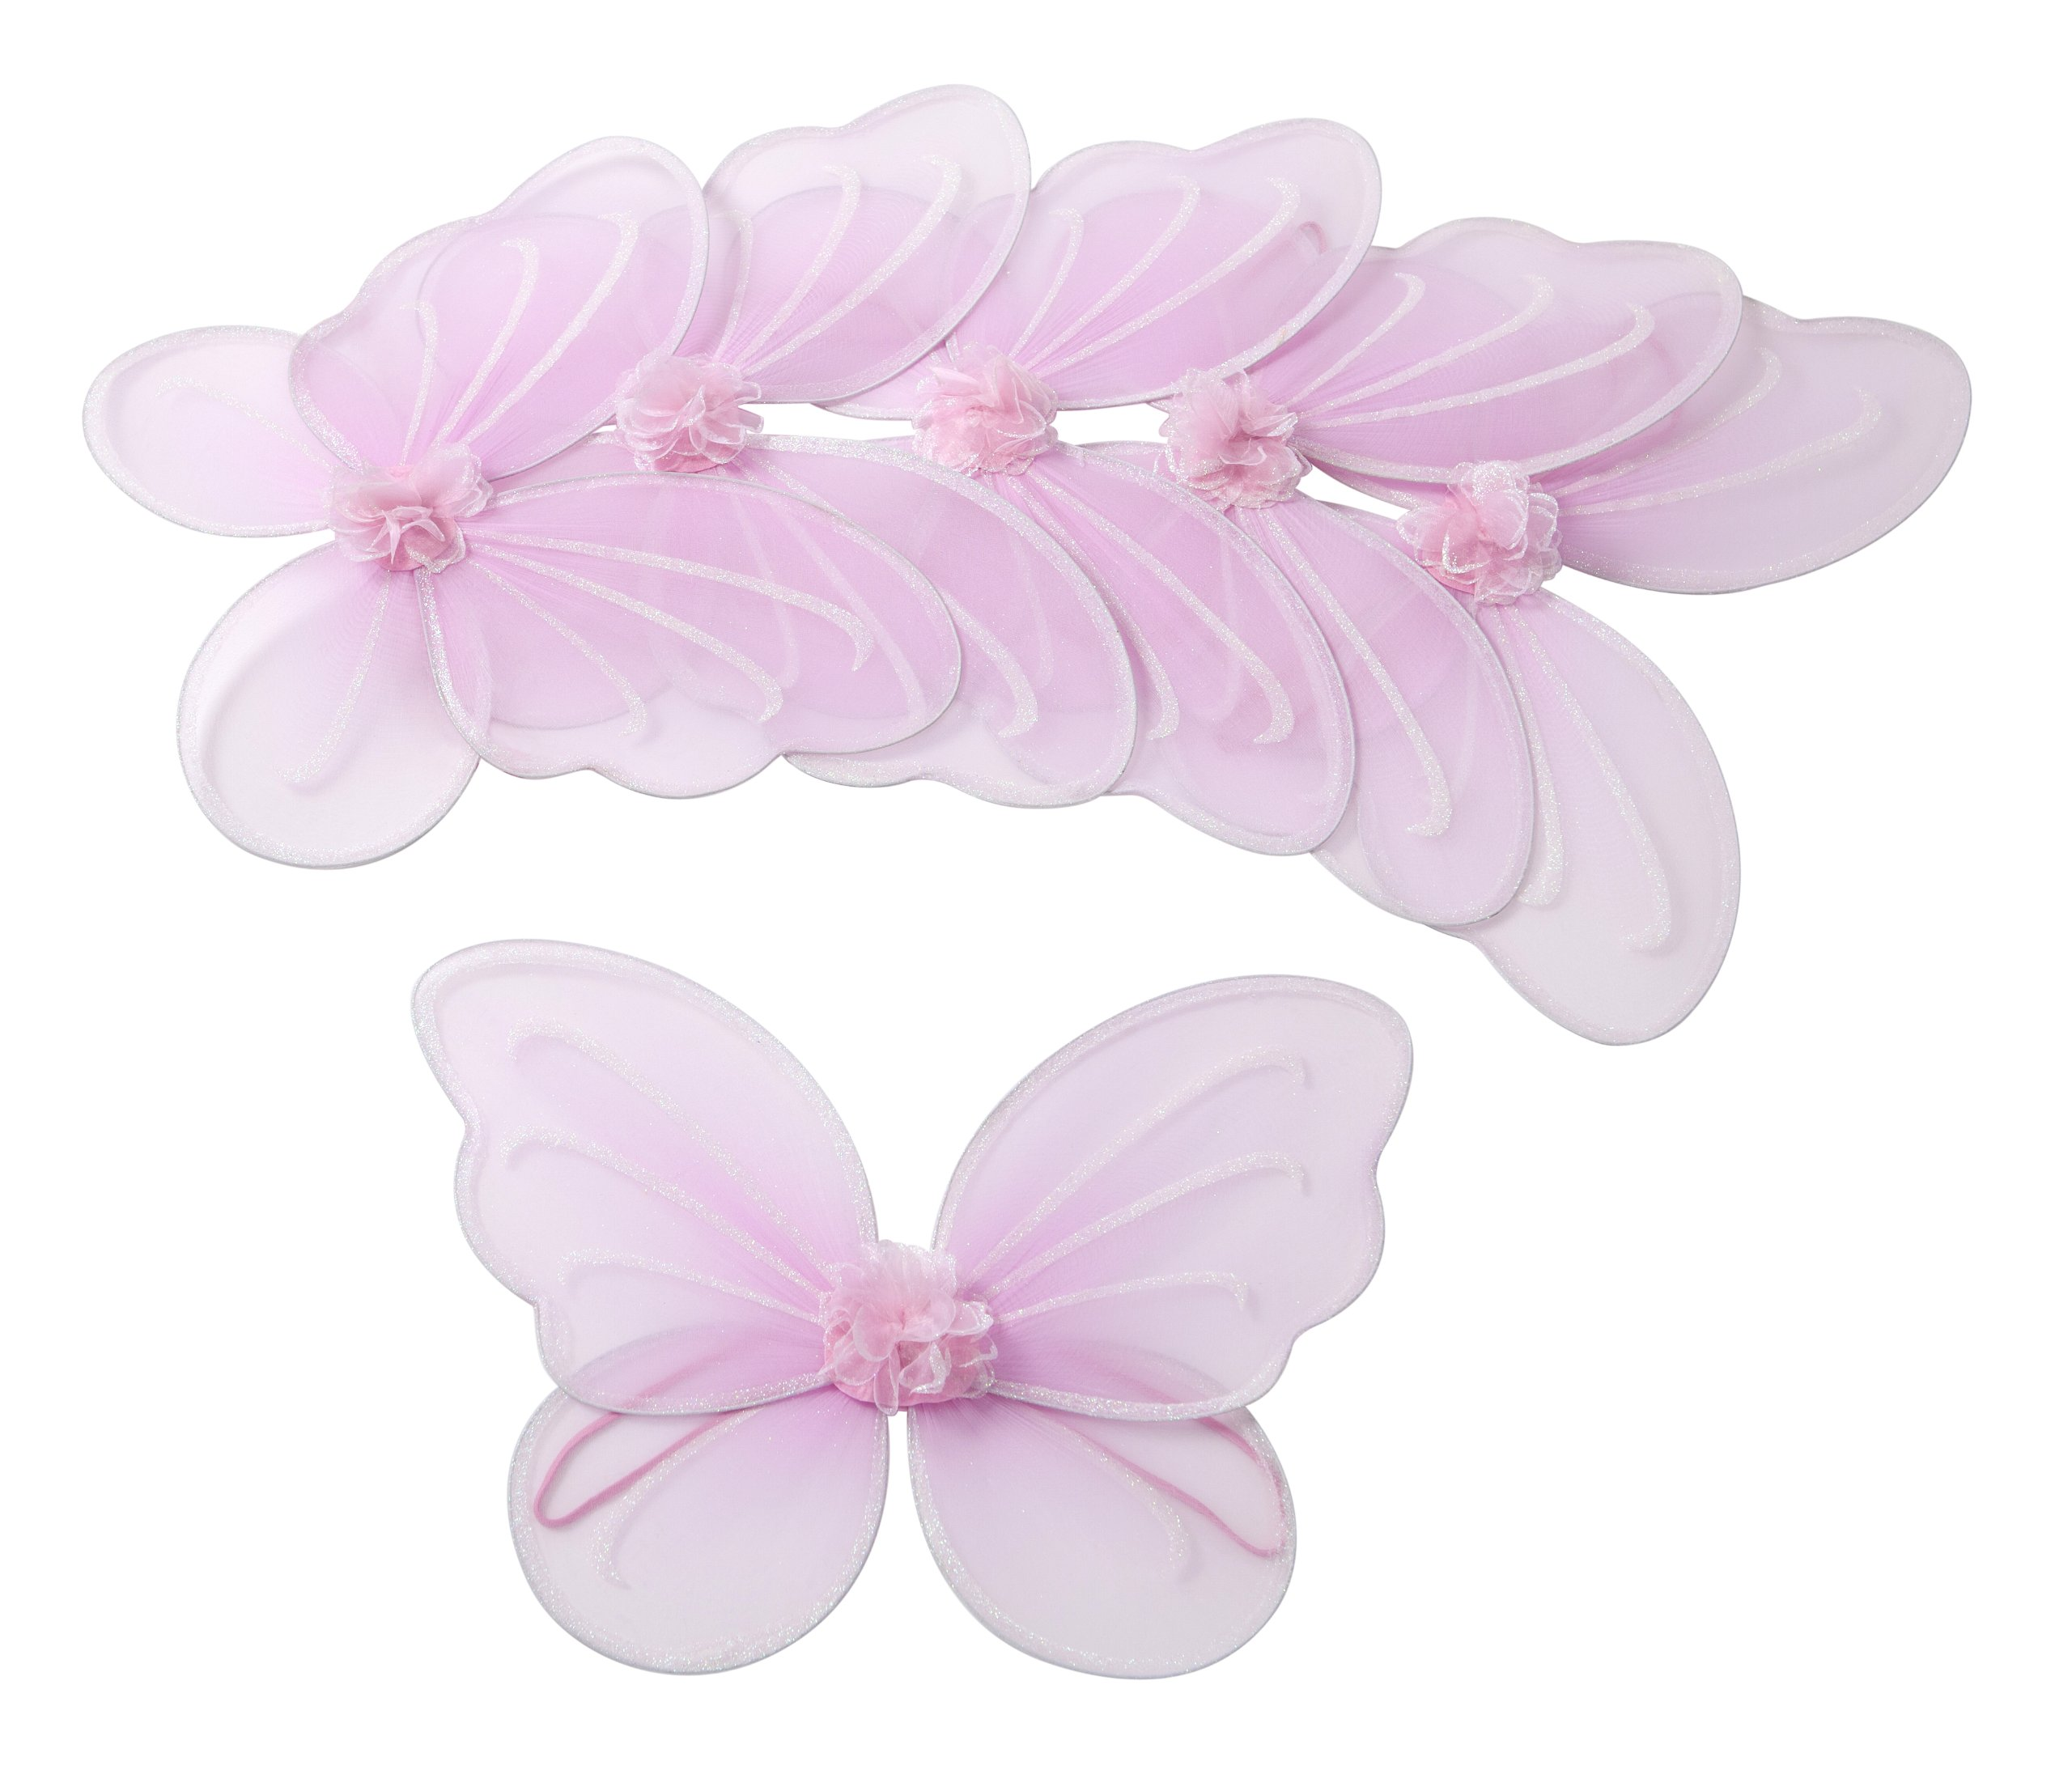 Butterfly Craze Girls' Fairy, Angel or Butterfly Wings – Costumes and Dress Up for Kids Aged 2 to 12 – Pack of 6 (Pink)